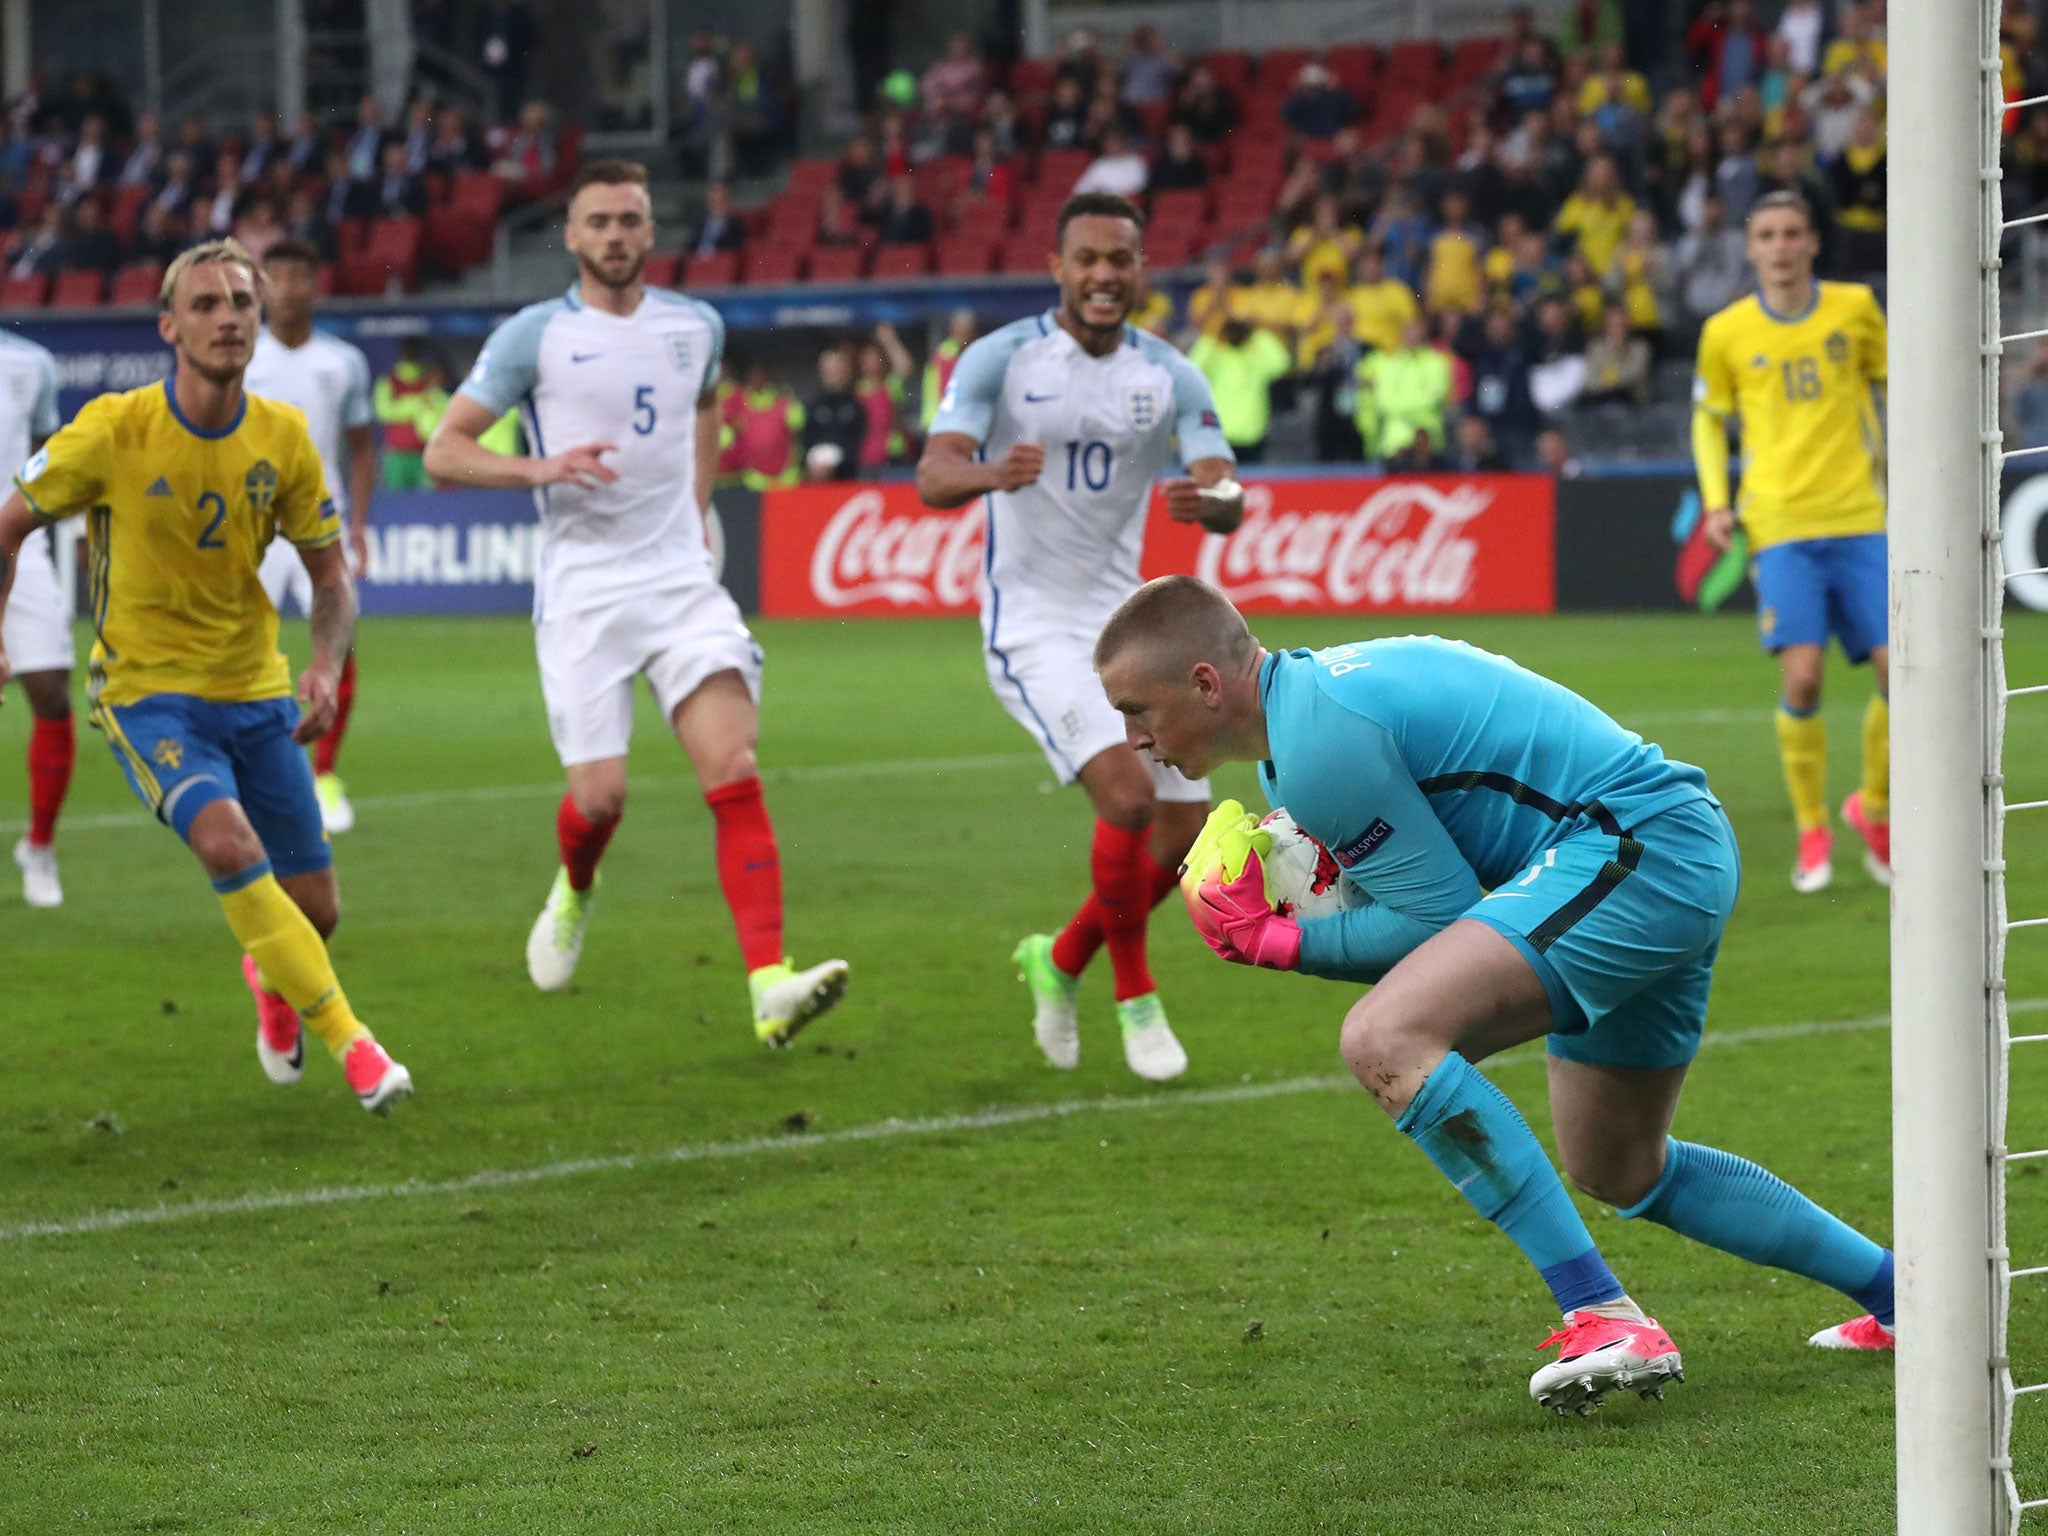 Jordan Pickford caps off fine week with penalty save as England U21s draw with Sweden